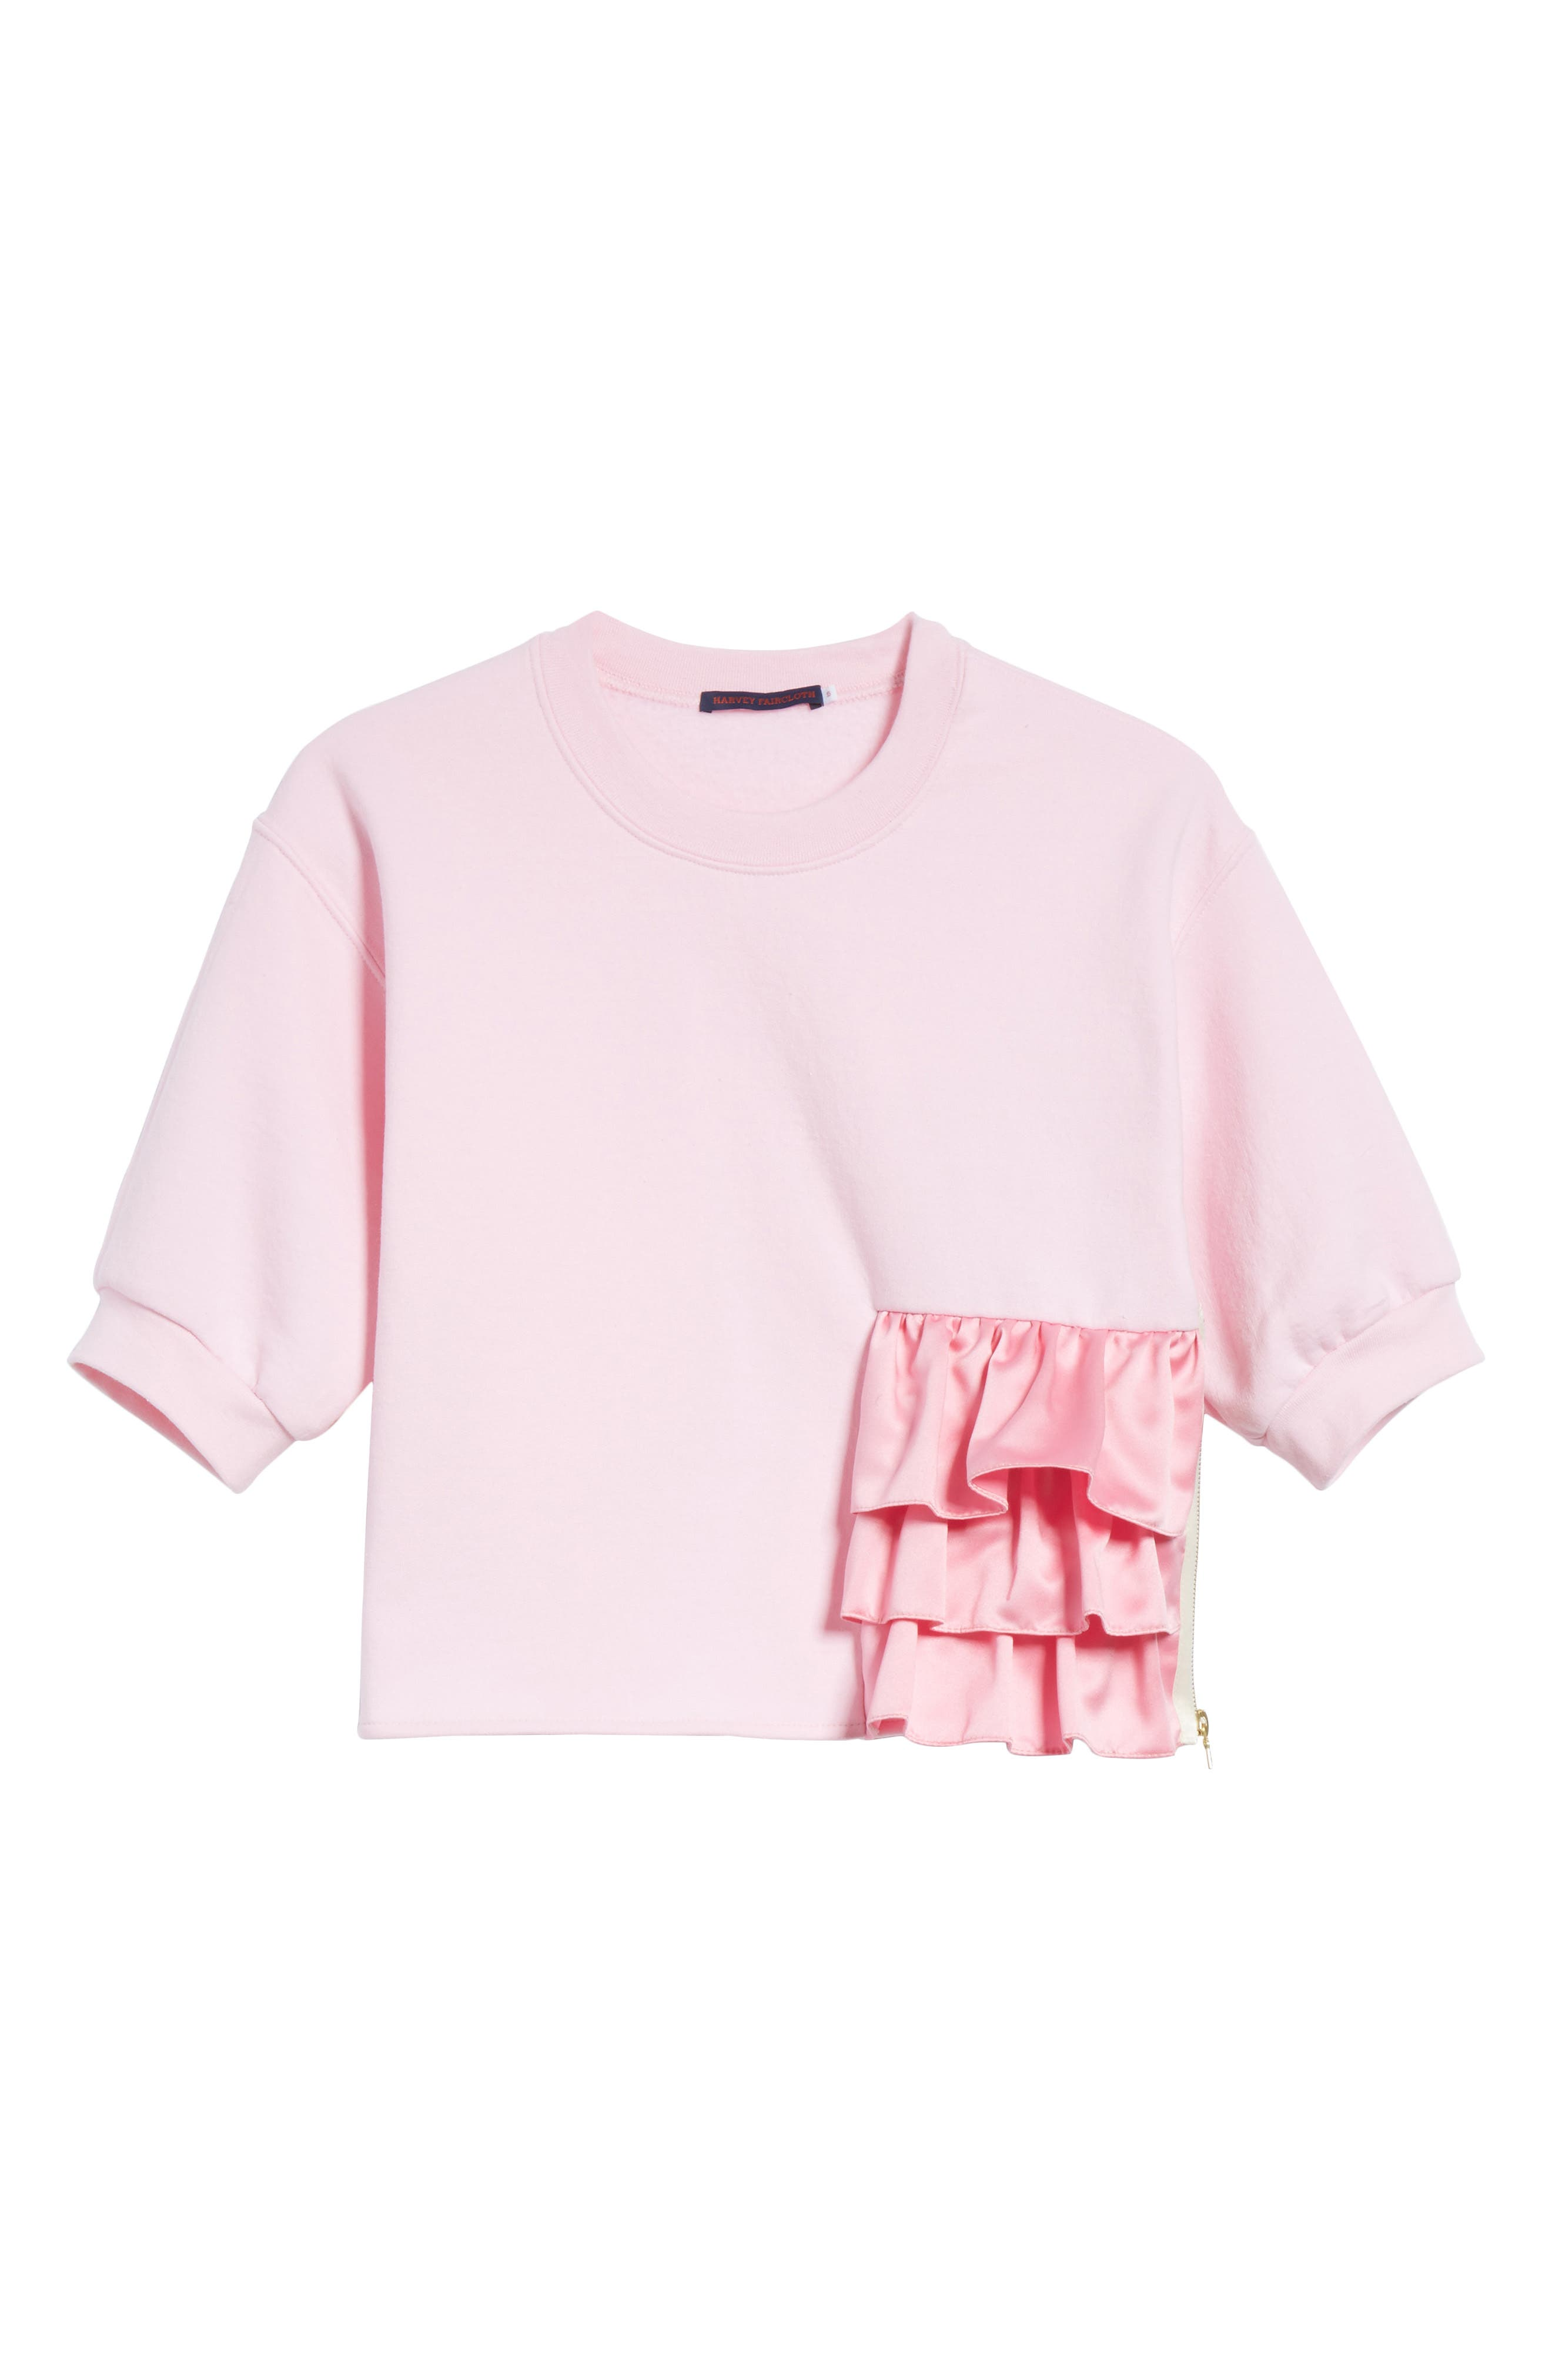 Ruffle Detail Crop Sweatshirt,                             Alternate thumbnail 6, color,                             650